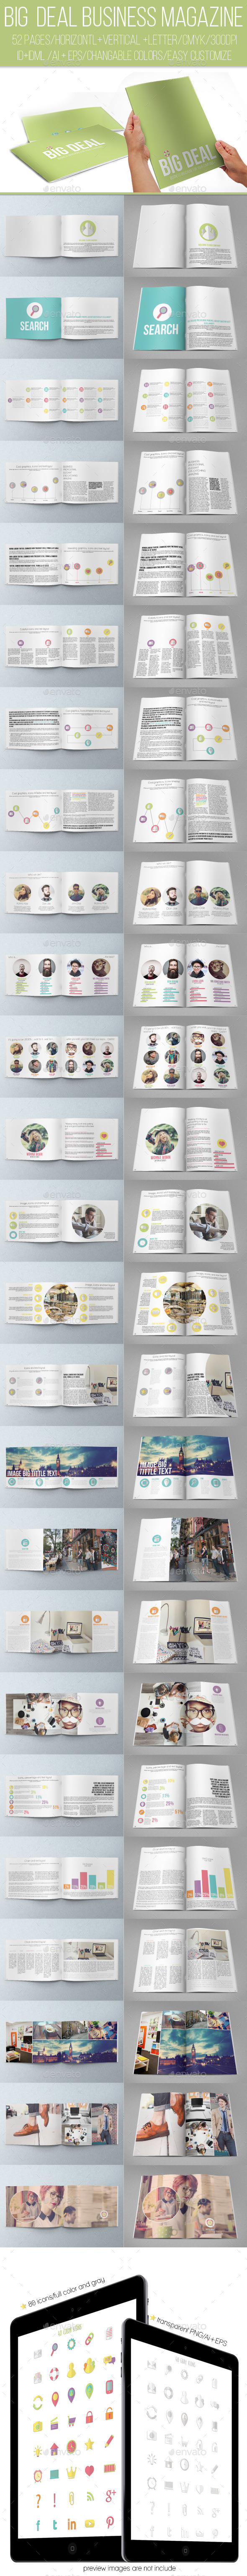 Big Deal Business Magazine - Magazines Print Templates